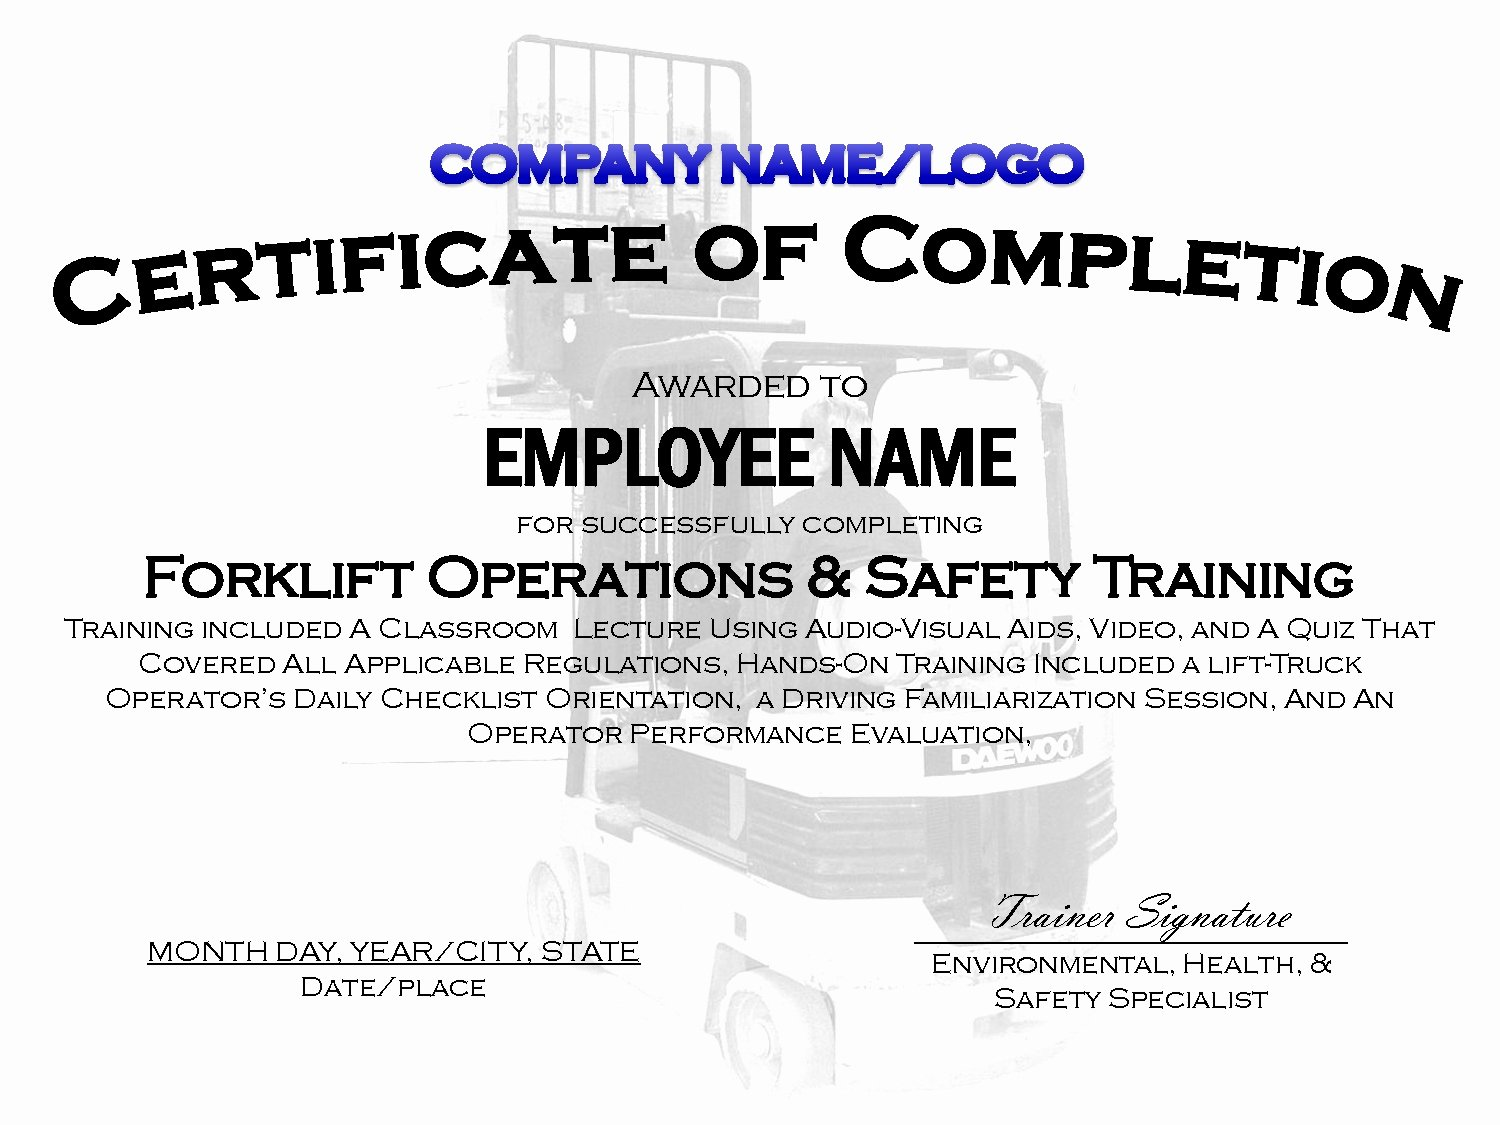 Forklift Training Certificate Template Unique forklift Train the Trainer Certification Clean 9 Best